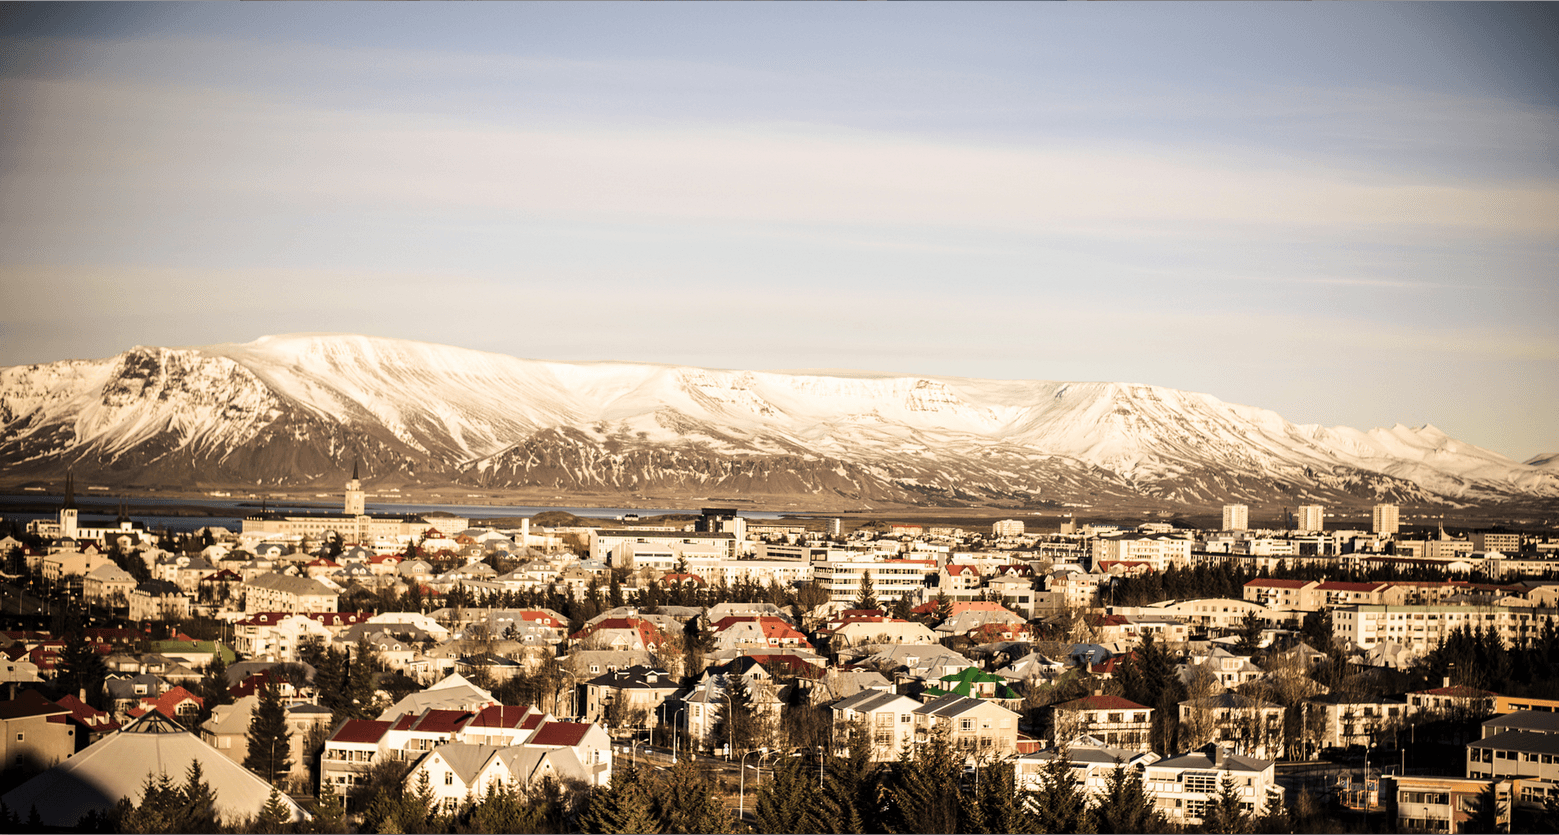 Reykjavik houses with Mt. Esja in the background